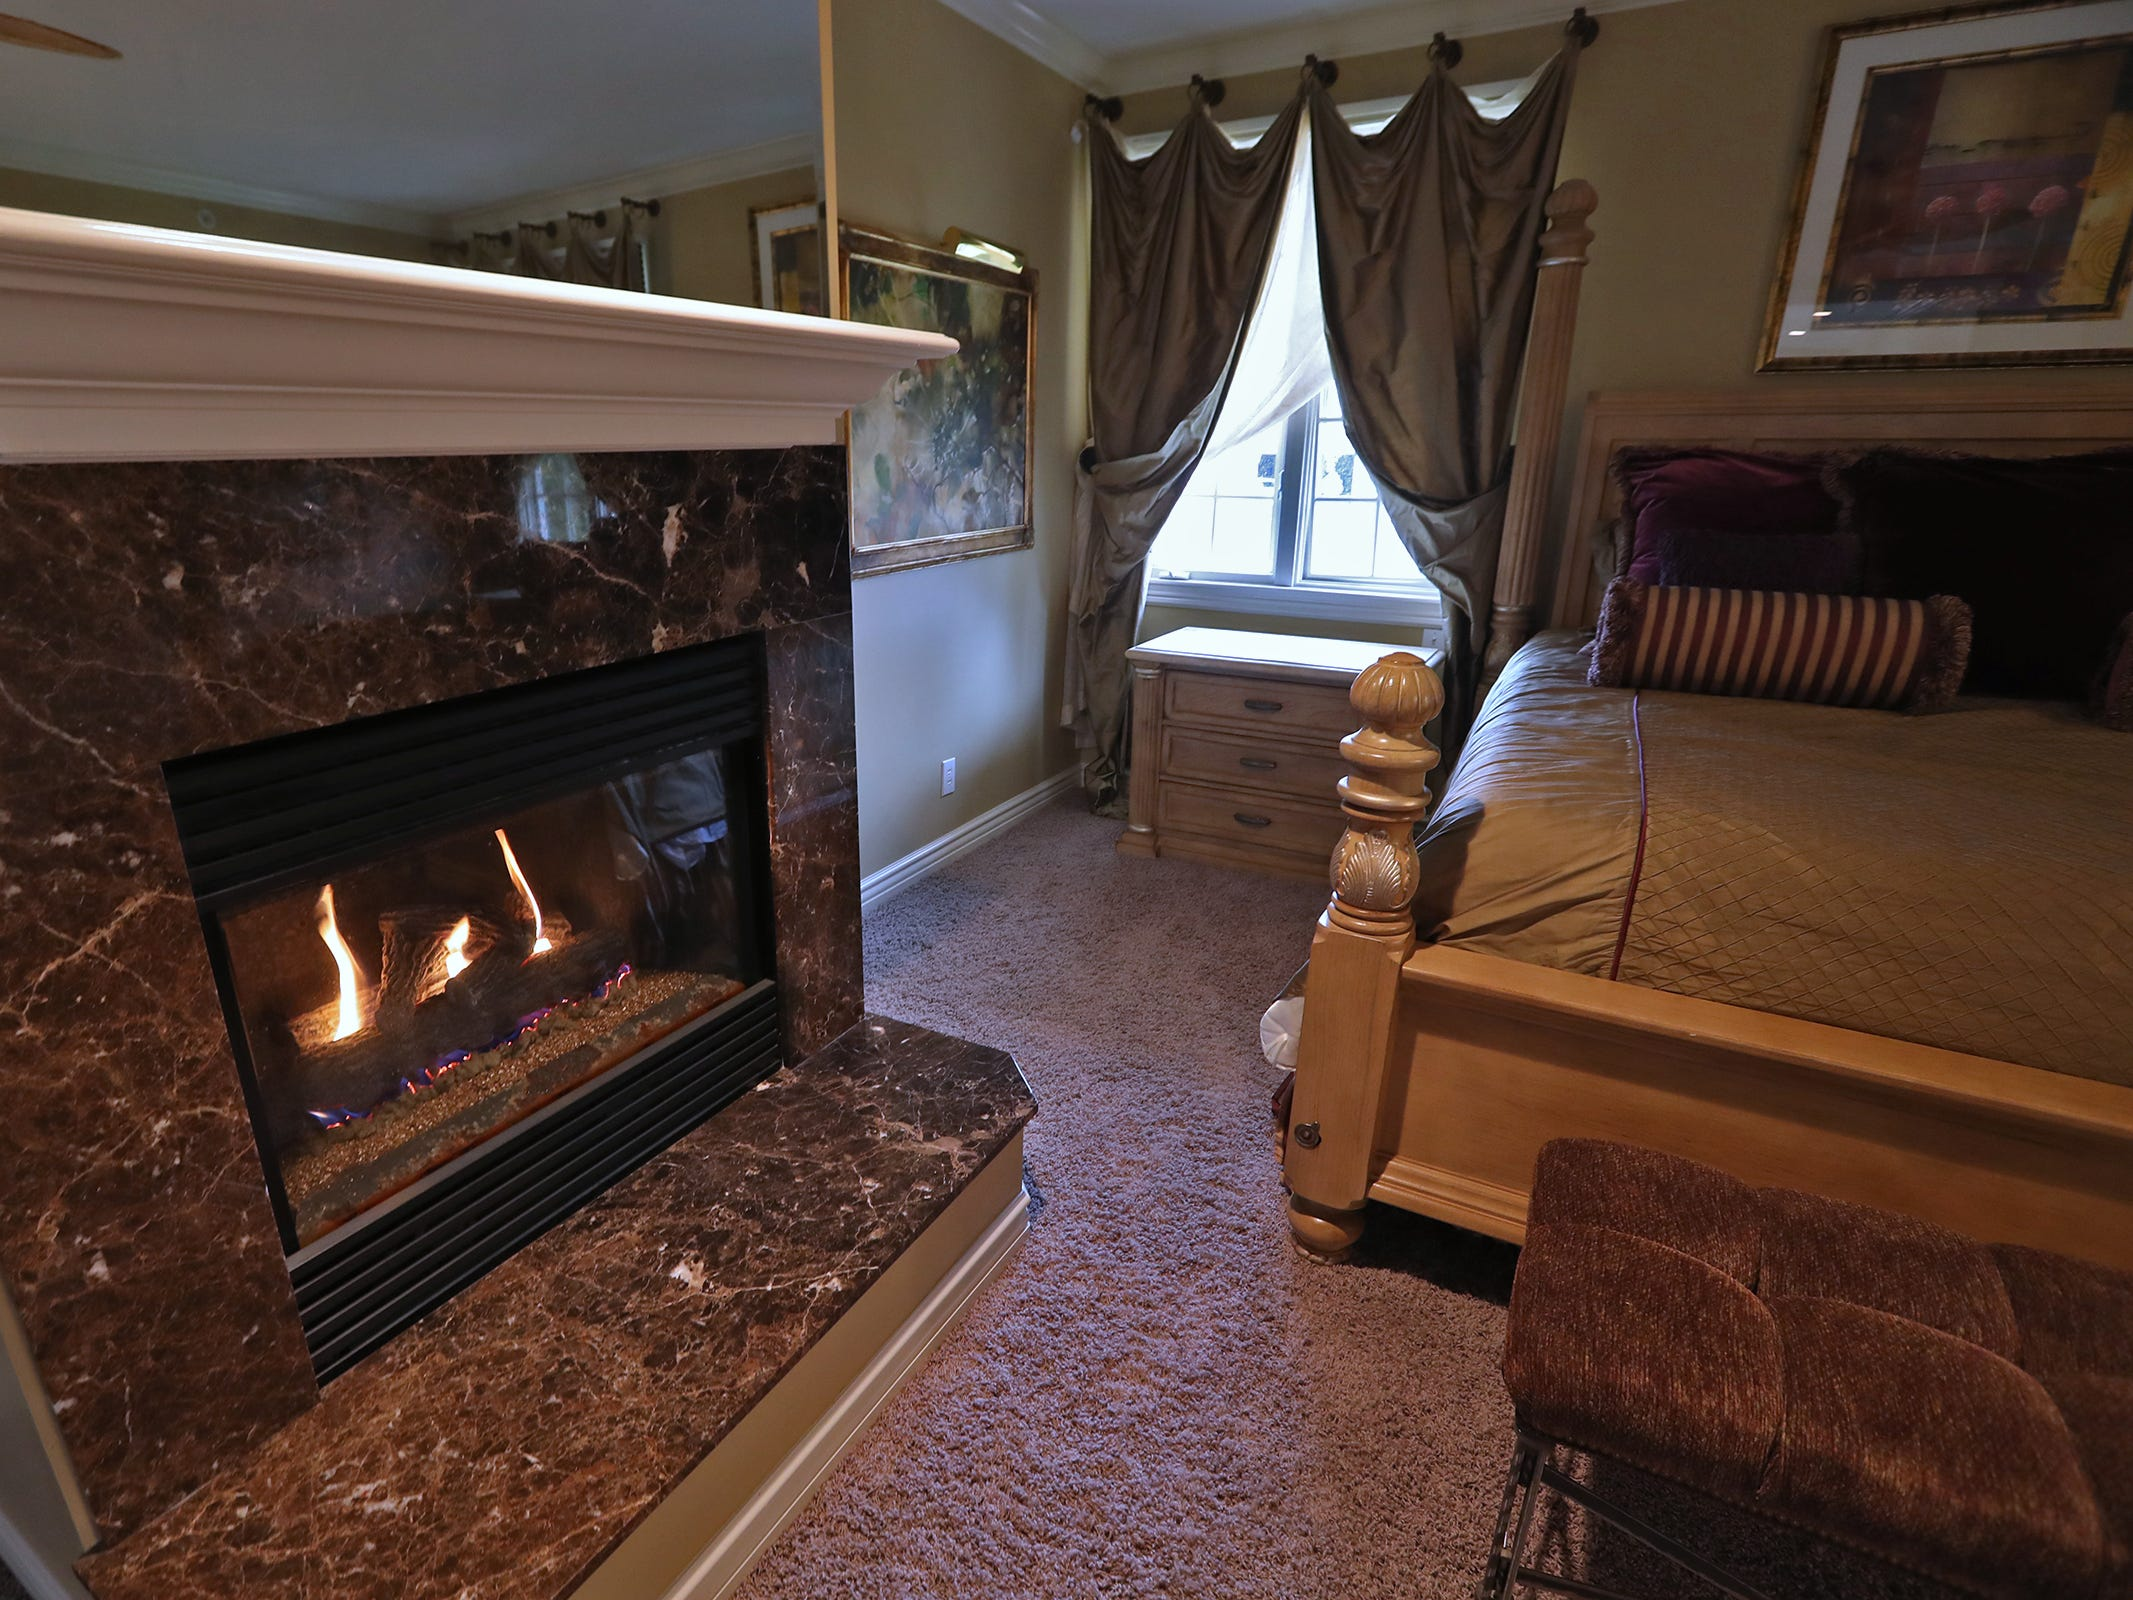 This is the master bedroom in the home at 1270 Laurelwood Ct. in Carmel, Friday, Dec. 28, 2018.  It includes a two-sided fireplace.